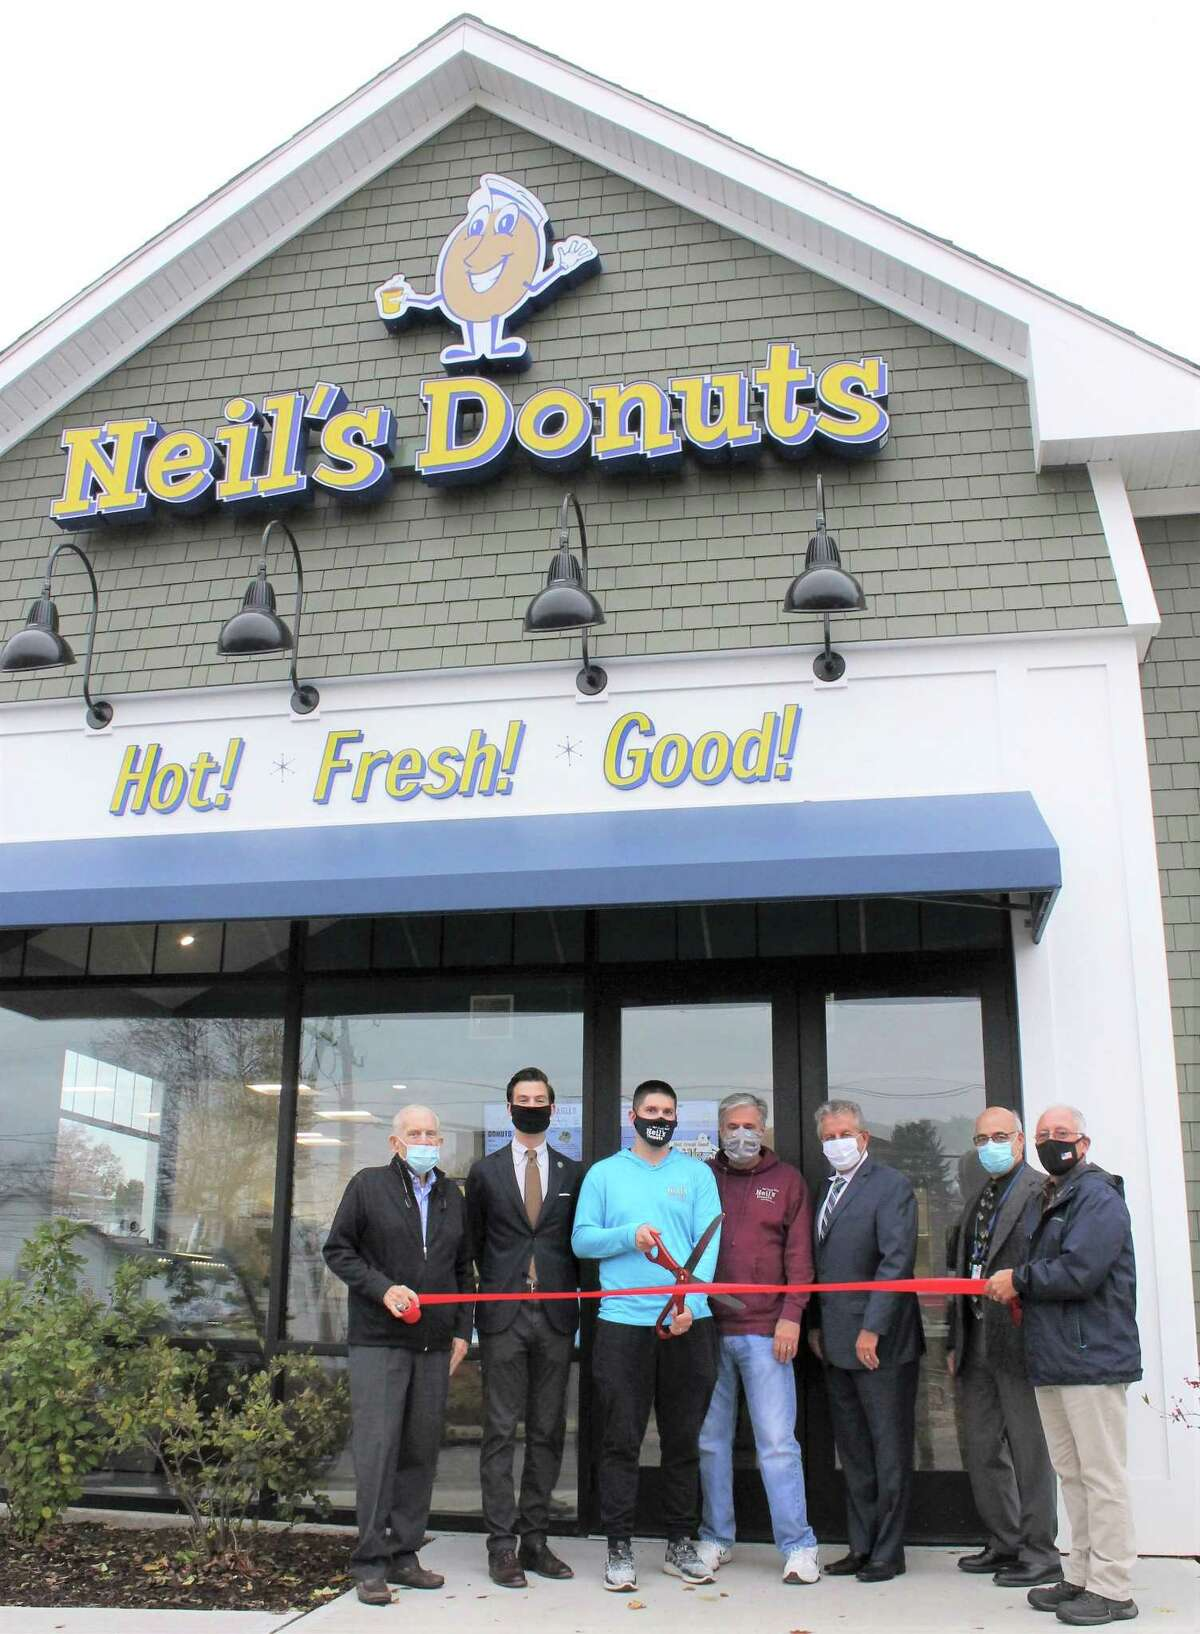 Neil's Donuts celebrated the official grand opening of its second location in Middletown Nov. 12. From left are Middlesex County Chamber of Commerce President Larry McHugh, Mayor Ben Florsheim, co-owner Rob Bukowski, Rob's father and co-owner Neil Bukowski, Kempenaar Real Estate President Robert Kempenaar, Economic Development Specialist for Middletown Planning, Conservation & Development, Thomas Marano; and Councilman Phil Pessina.